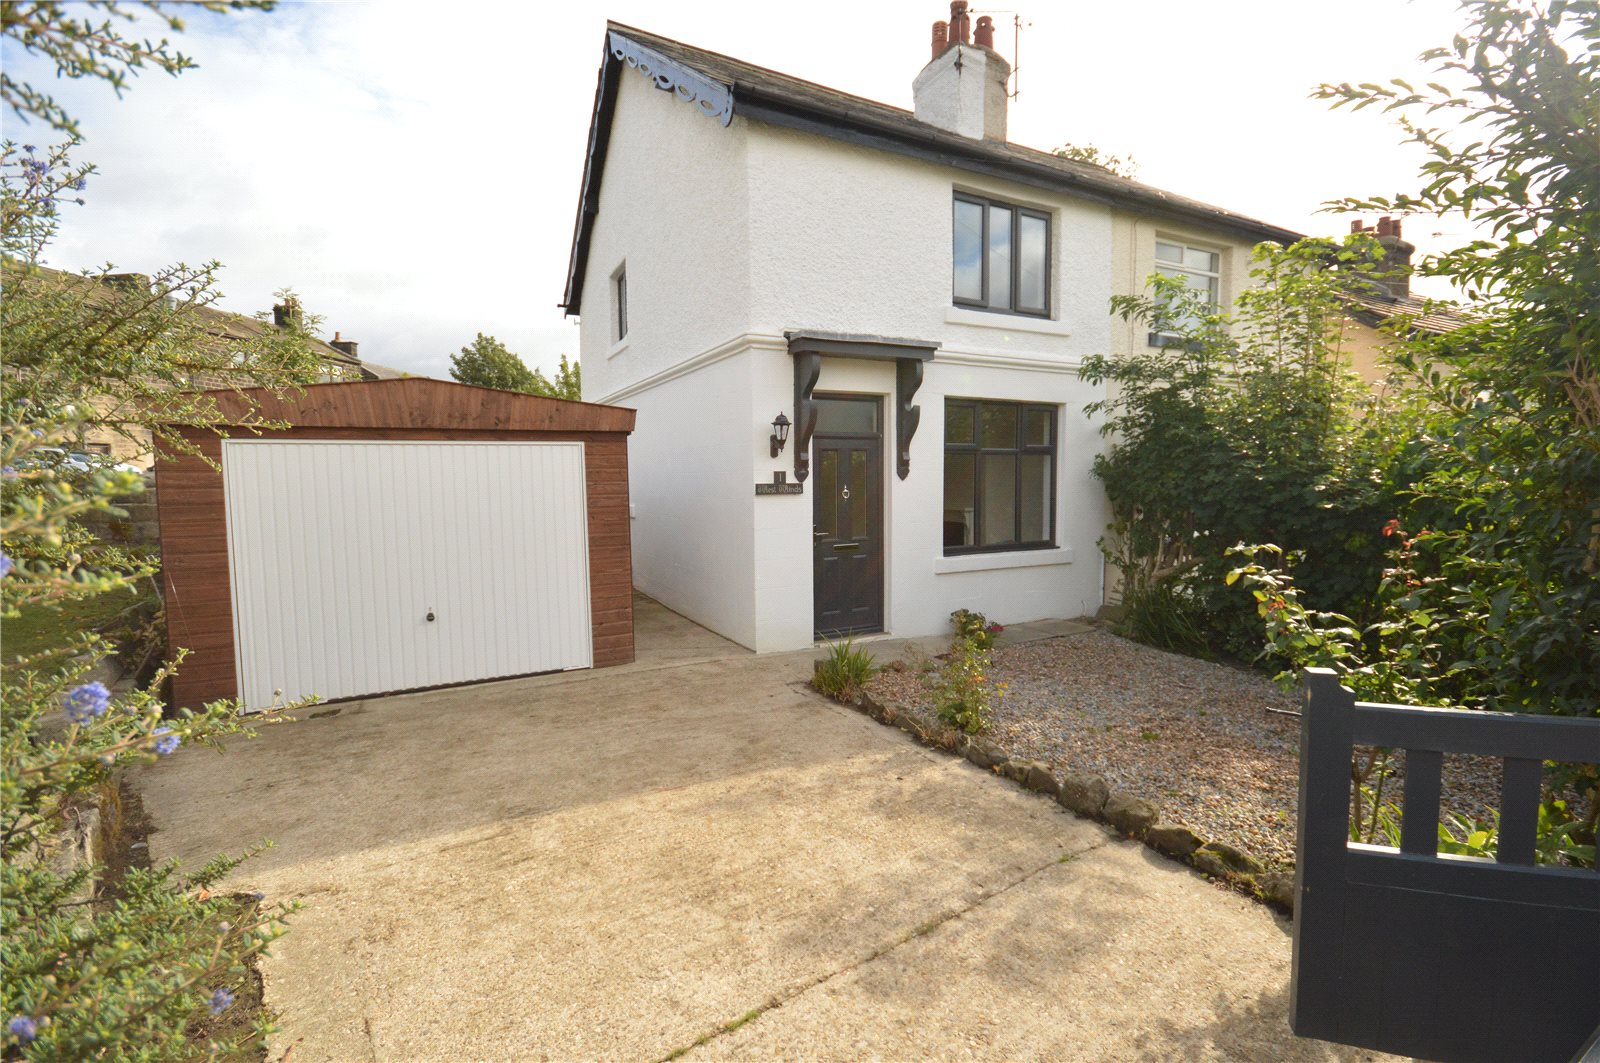 Property for sale in Horsforth, semi detached exterior of home